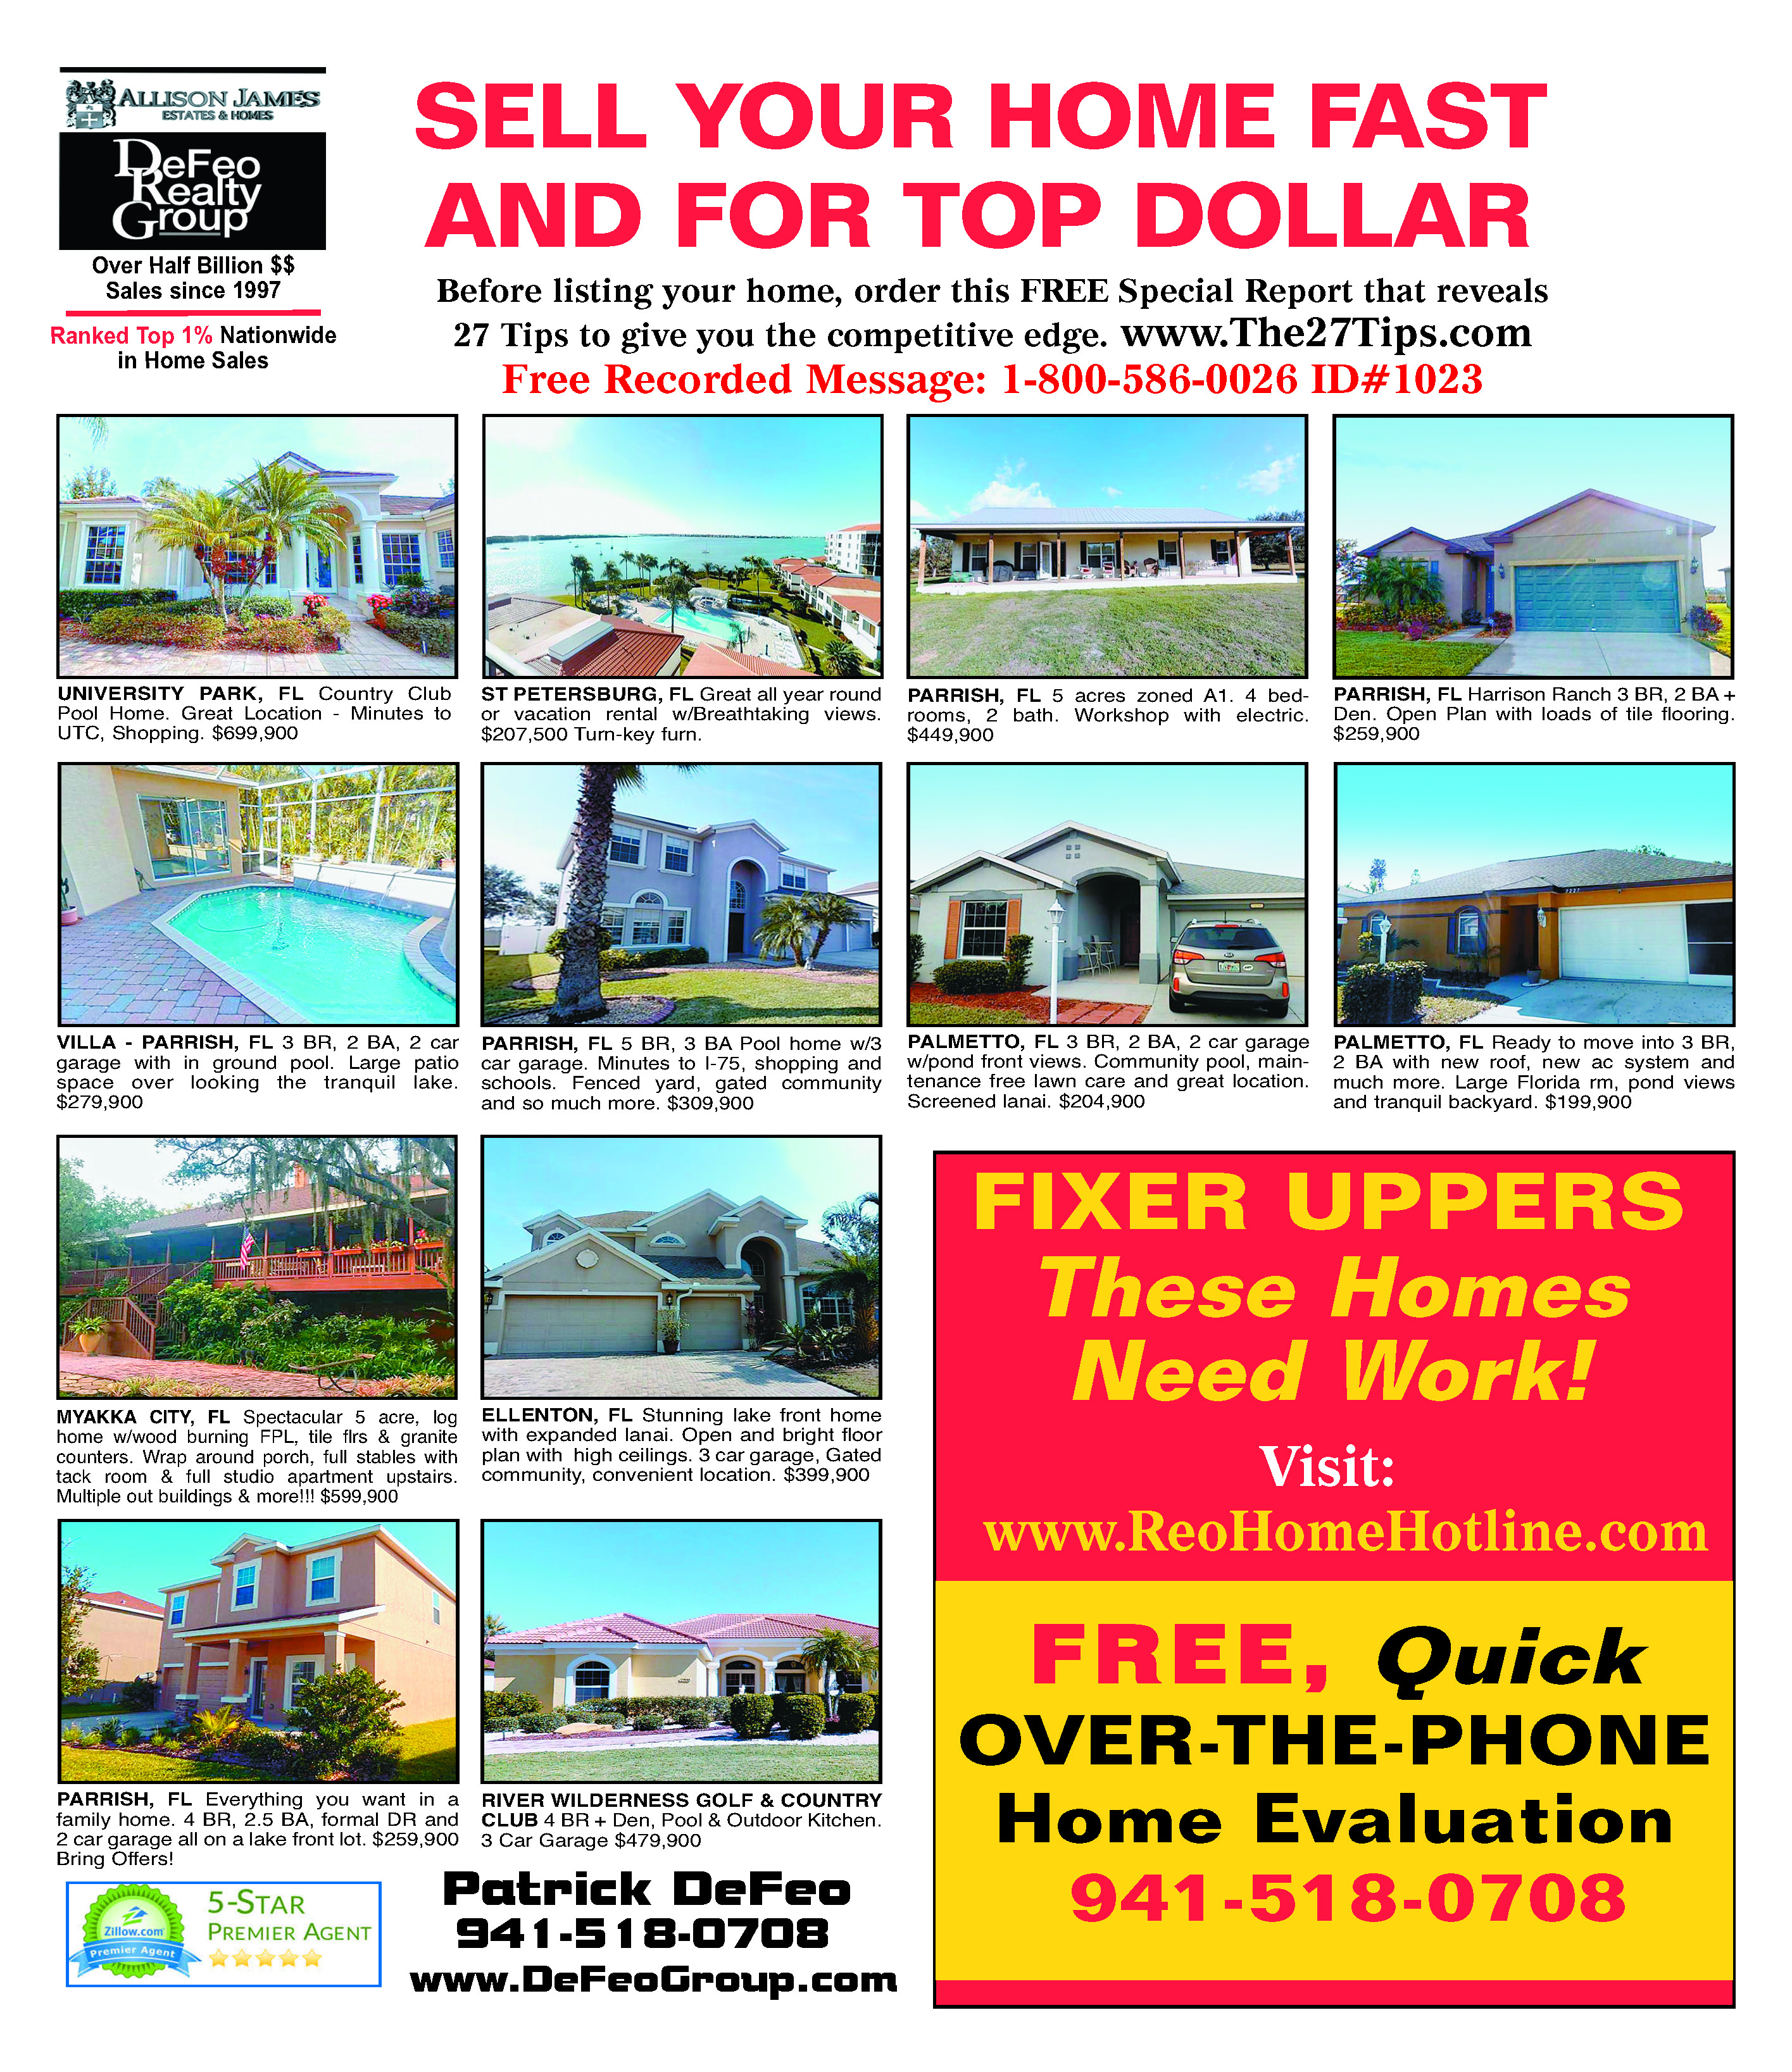 our marketing patrick defeo ii 941 518 0708 palmetto fl your home syndicated on over 500 real estate websites